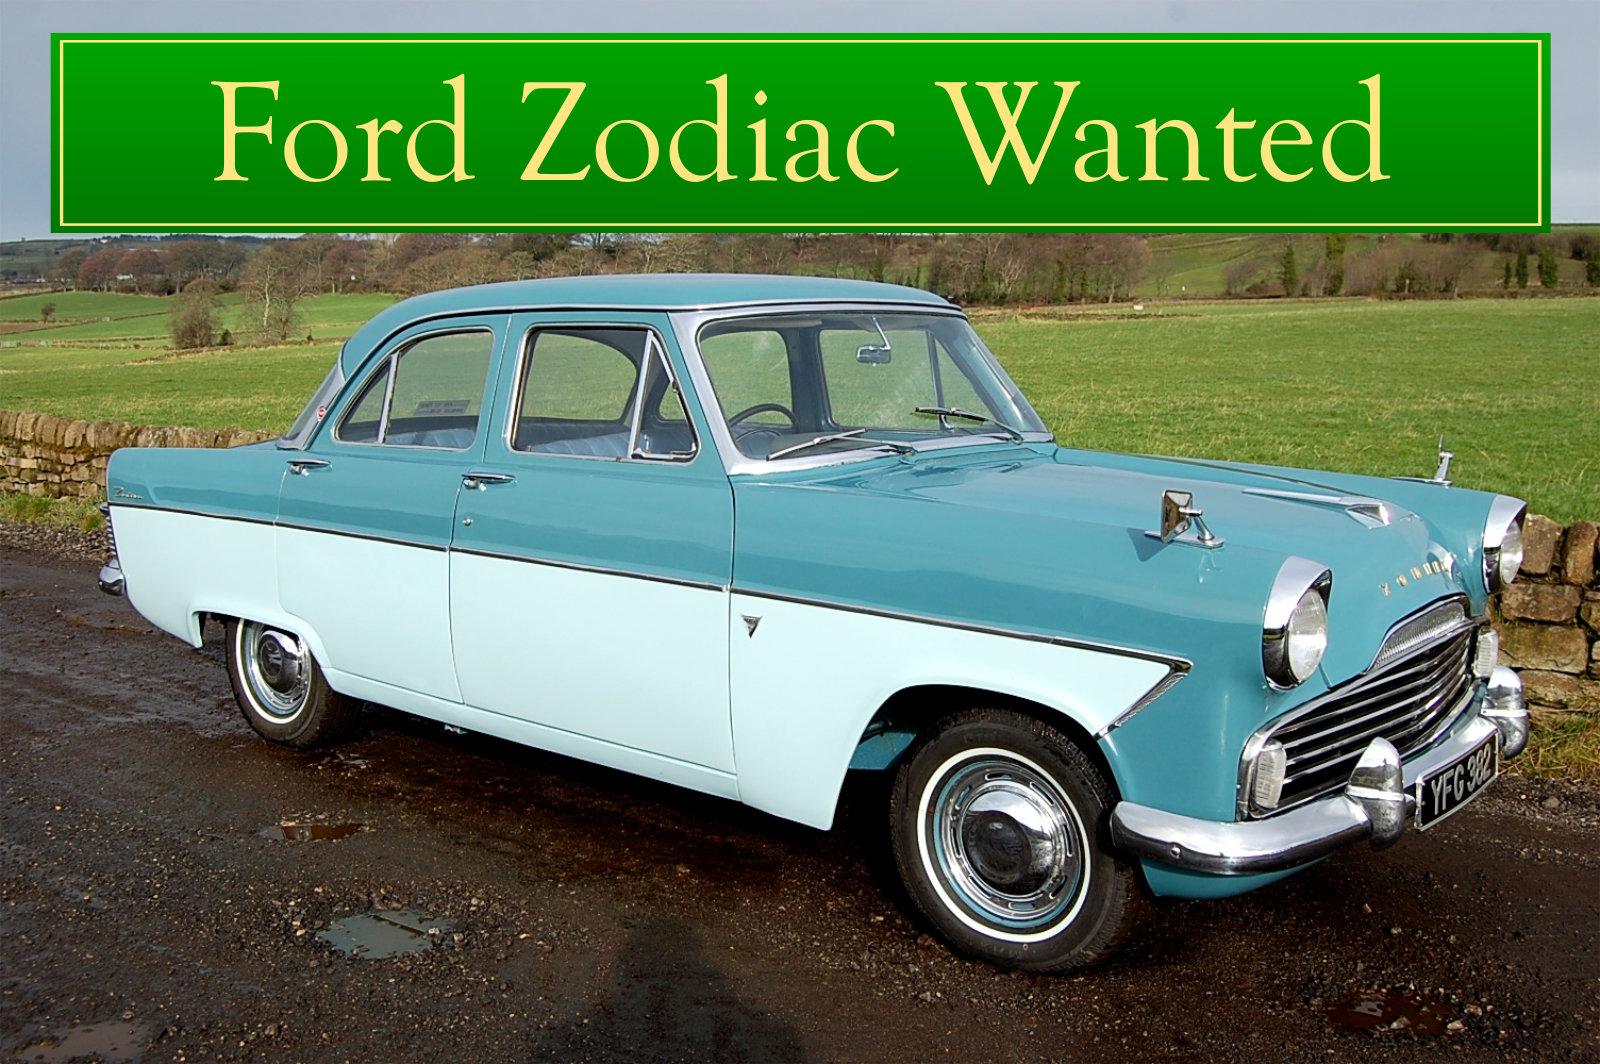 FORD COSWORTH WANTED Wanted (picture 6 of 6)